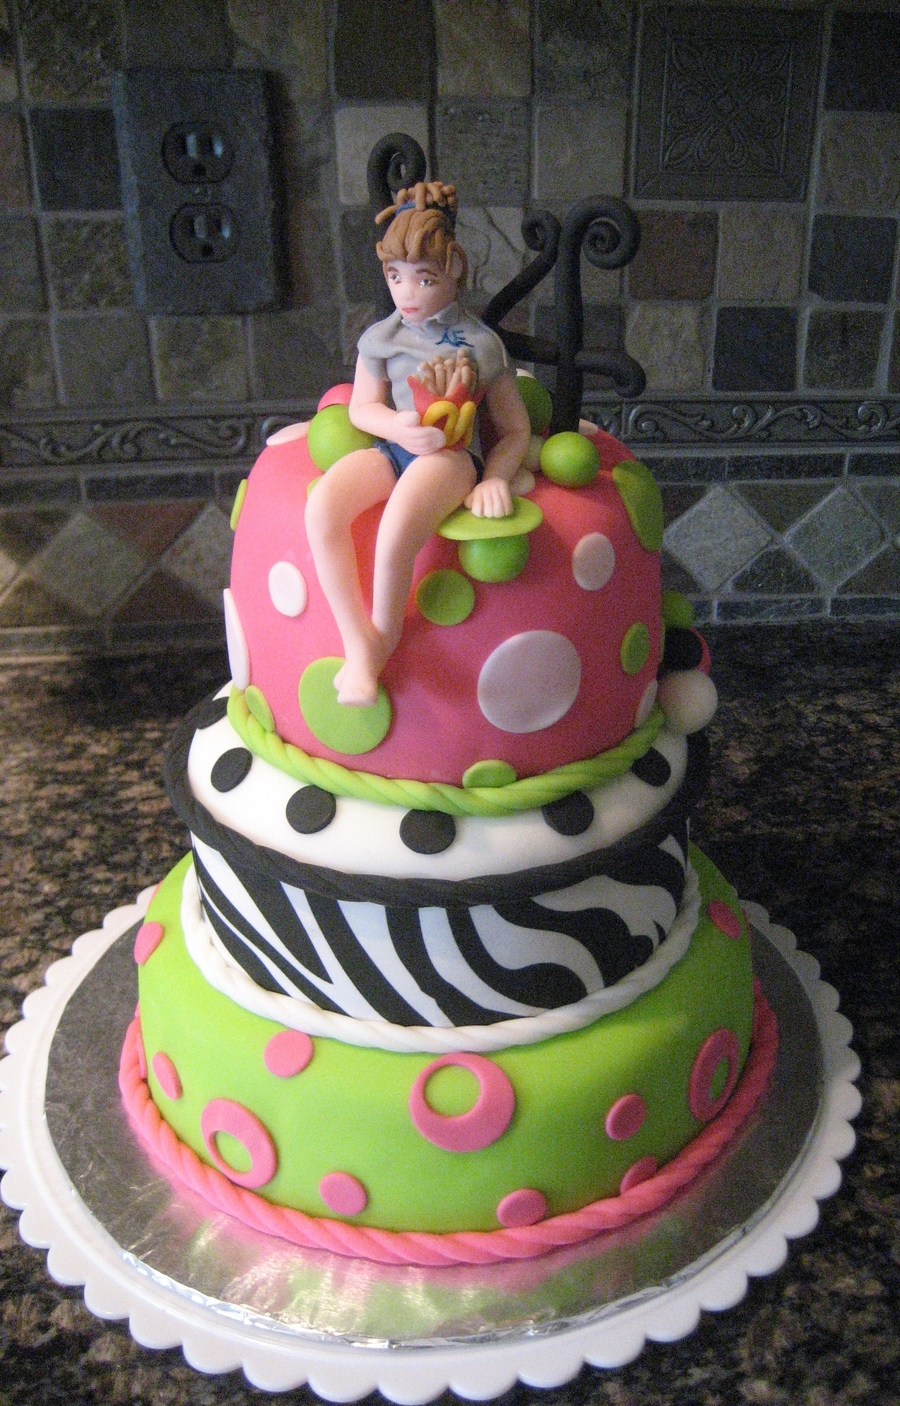 Lime Green Pink Polka Dot Zebra Stripe Birthday Cake With 14 Year Old Girl Sitting On Top In Her Favorite Summer Outfit Eating French Fries